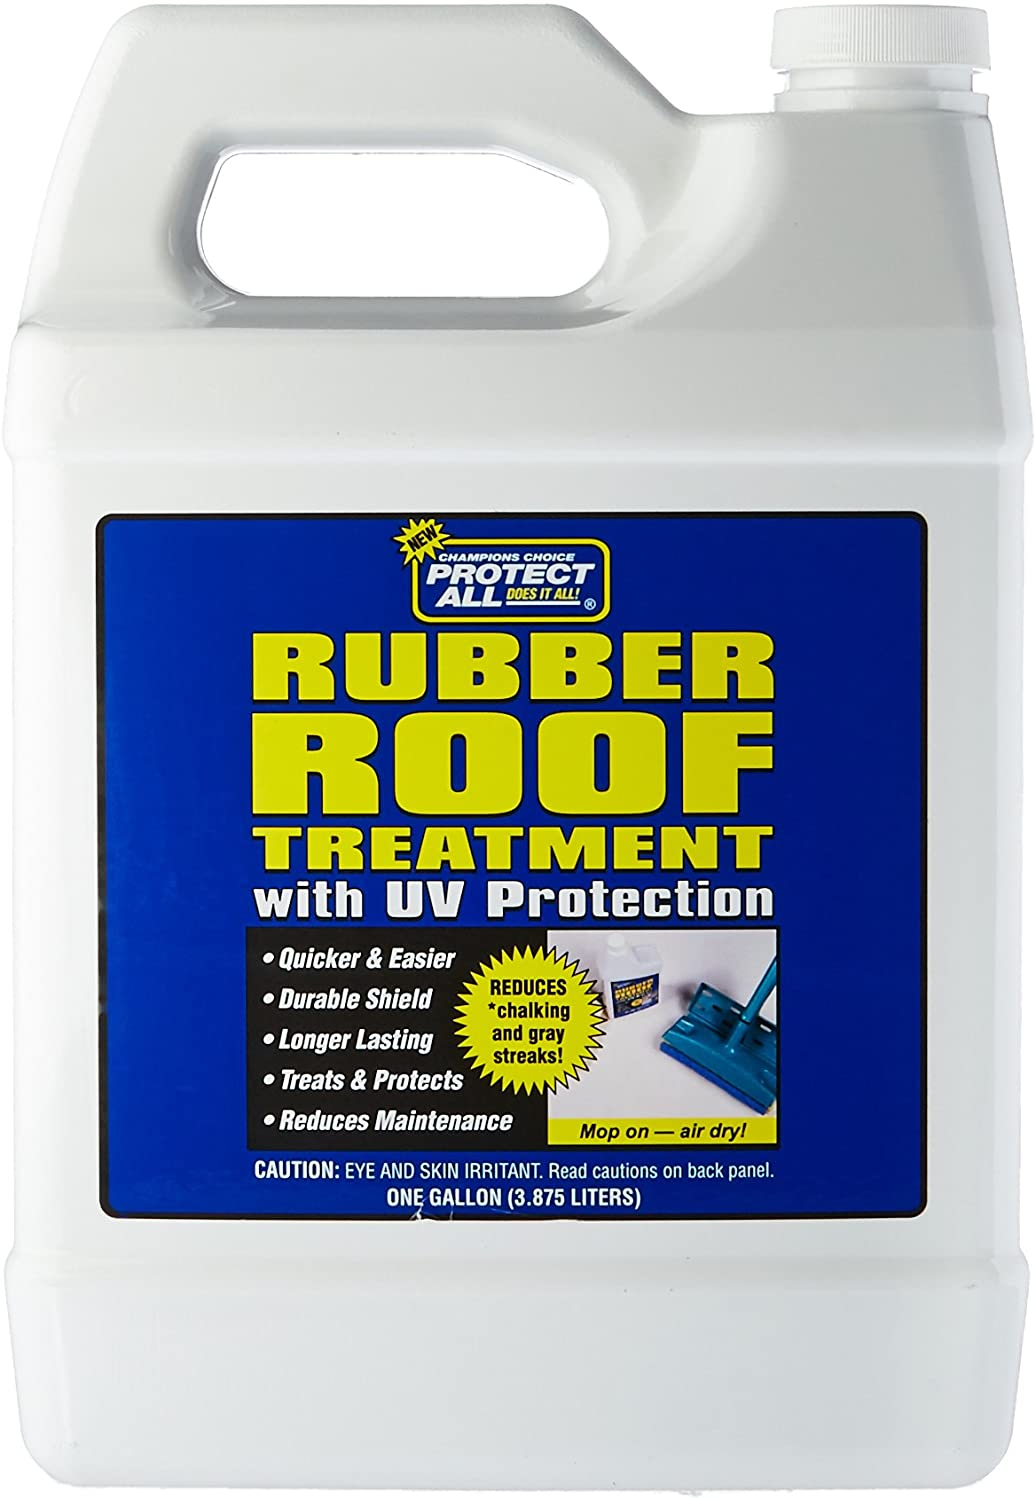 RV Rubber Roof Treatment - 1 gallon - anti-static, dirt repelling, and UV protectant